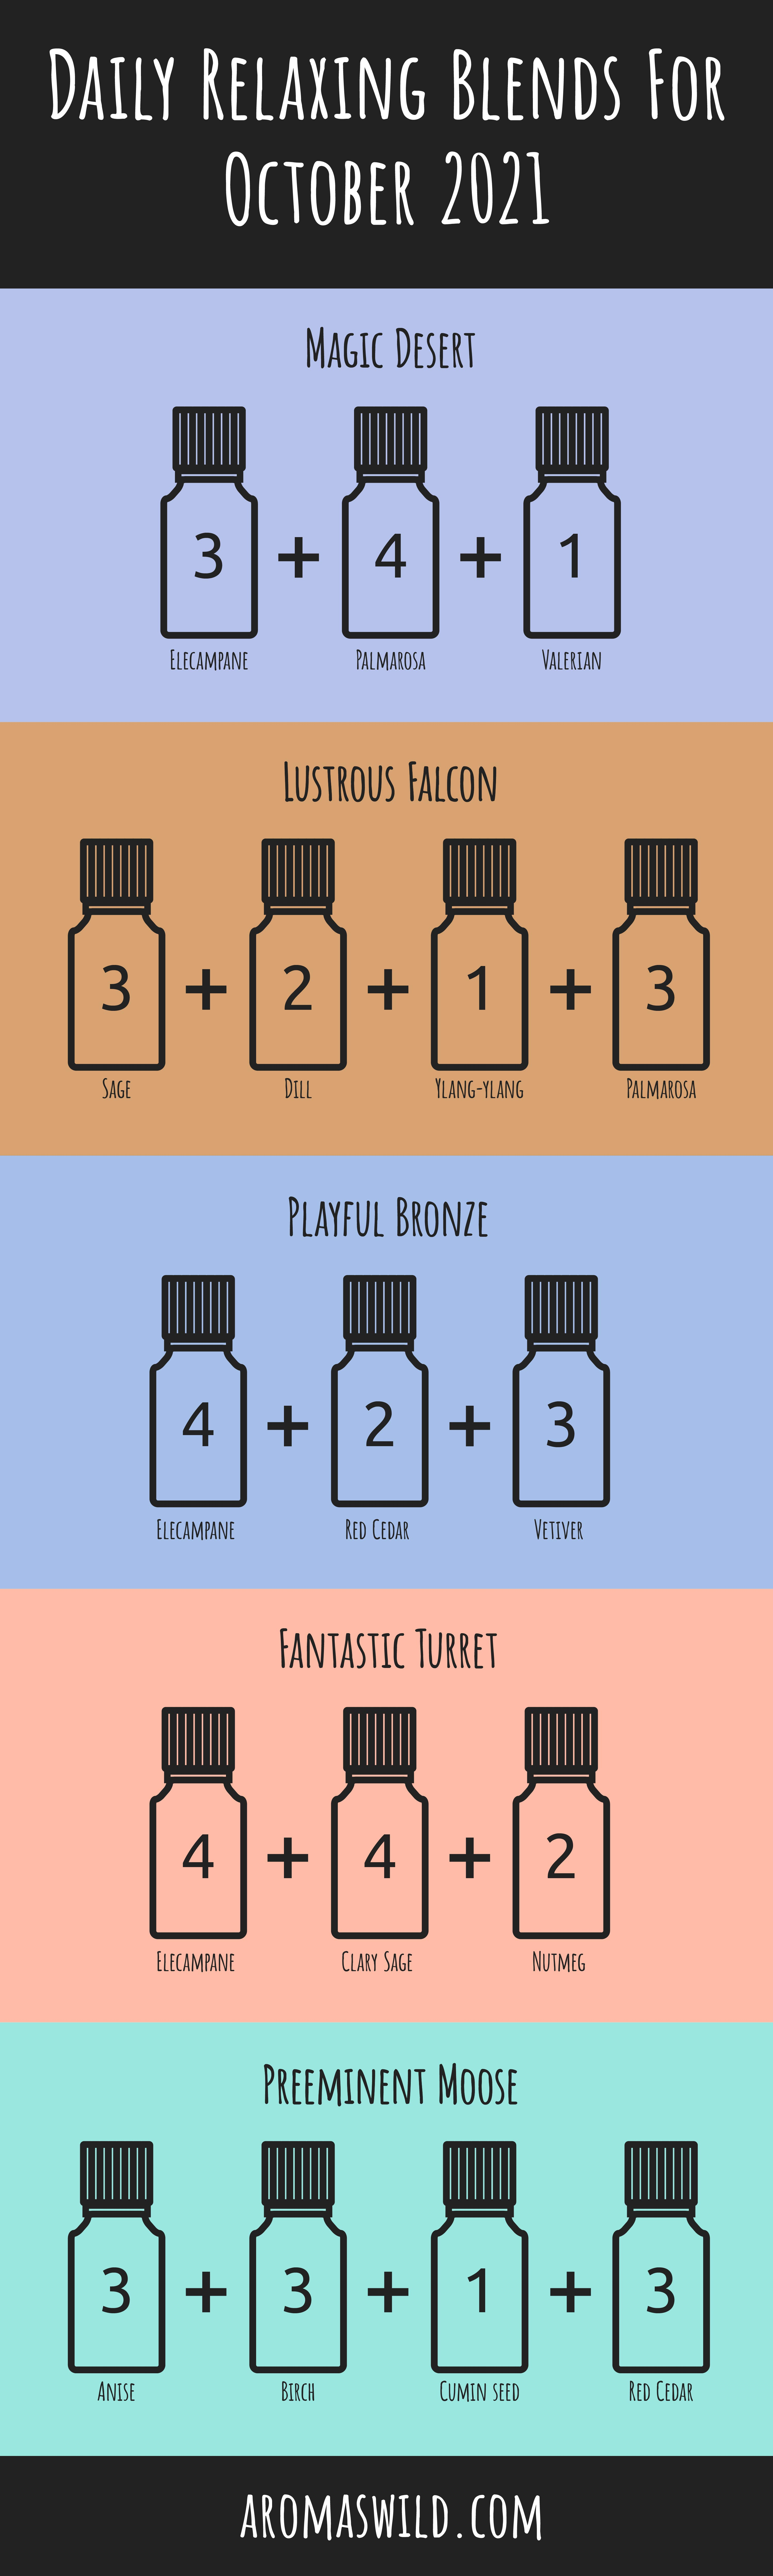 clean laundry diffuser blend – Daily Relaxing Blends For 20 October 2021